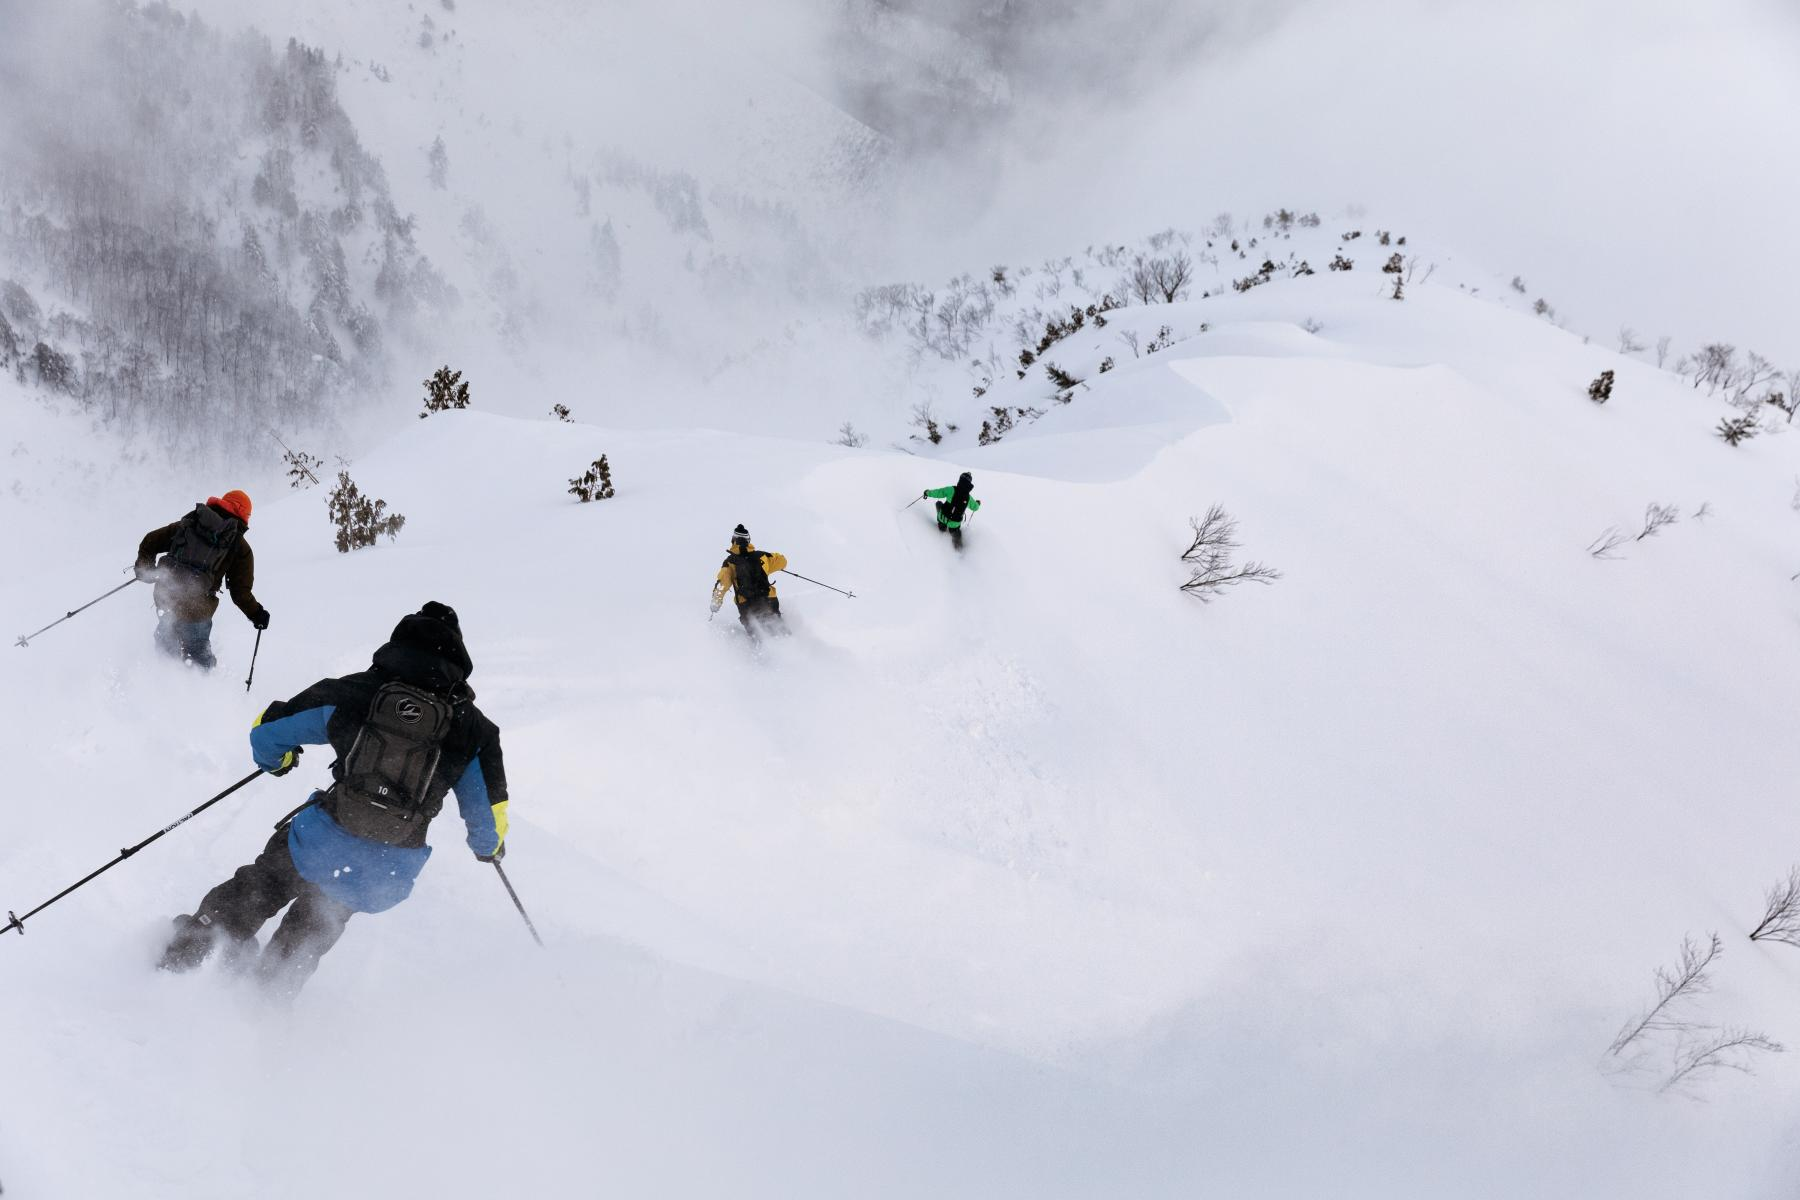 Skiers descend a mountain into infinite powder